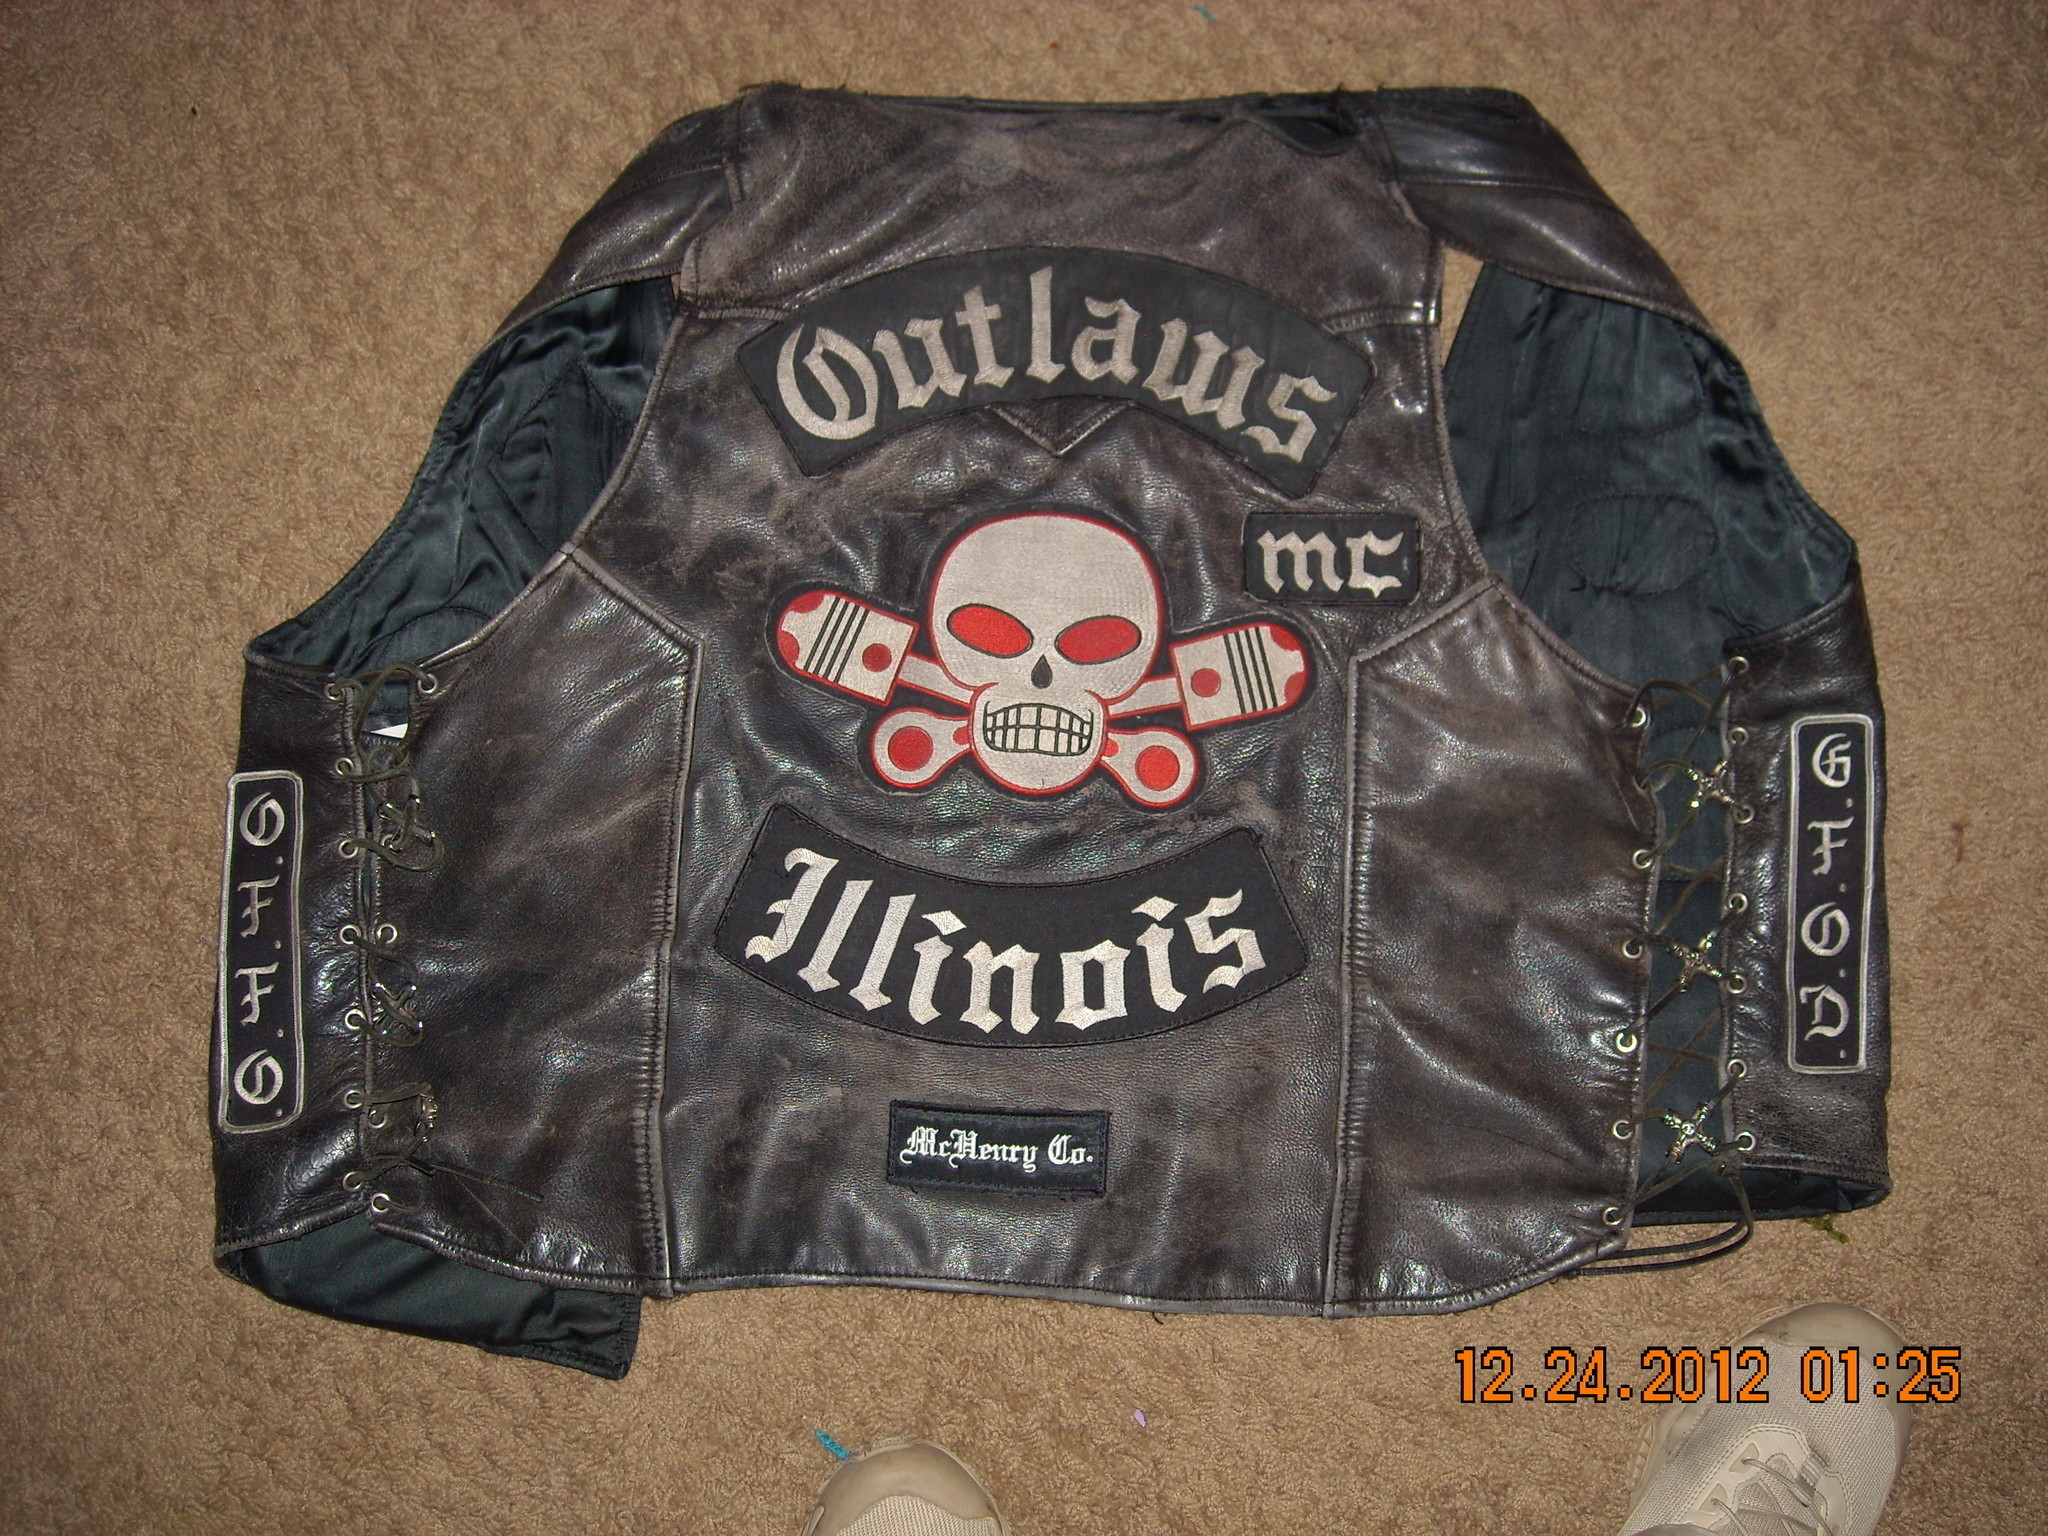 Outlaws biker group loses again in court over return of ...